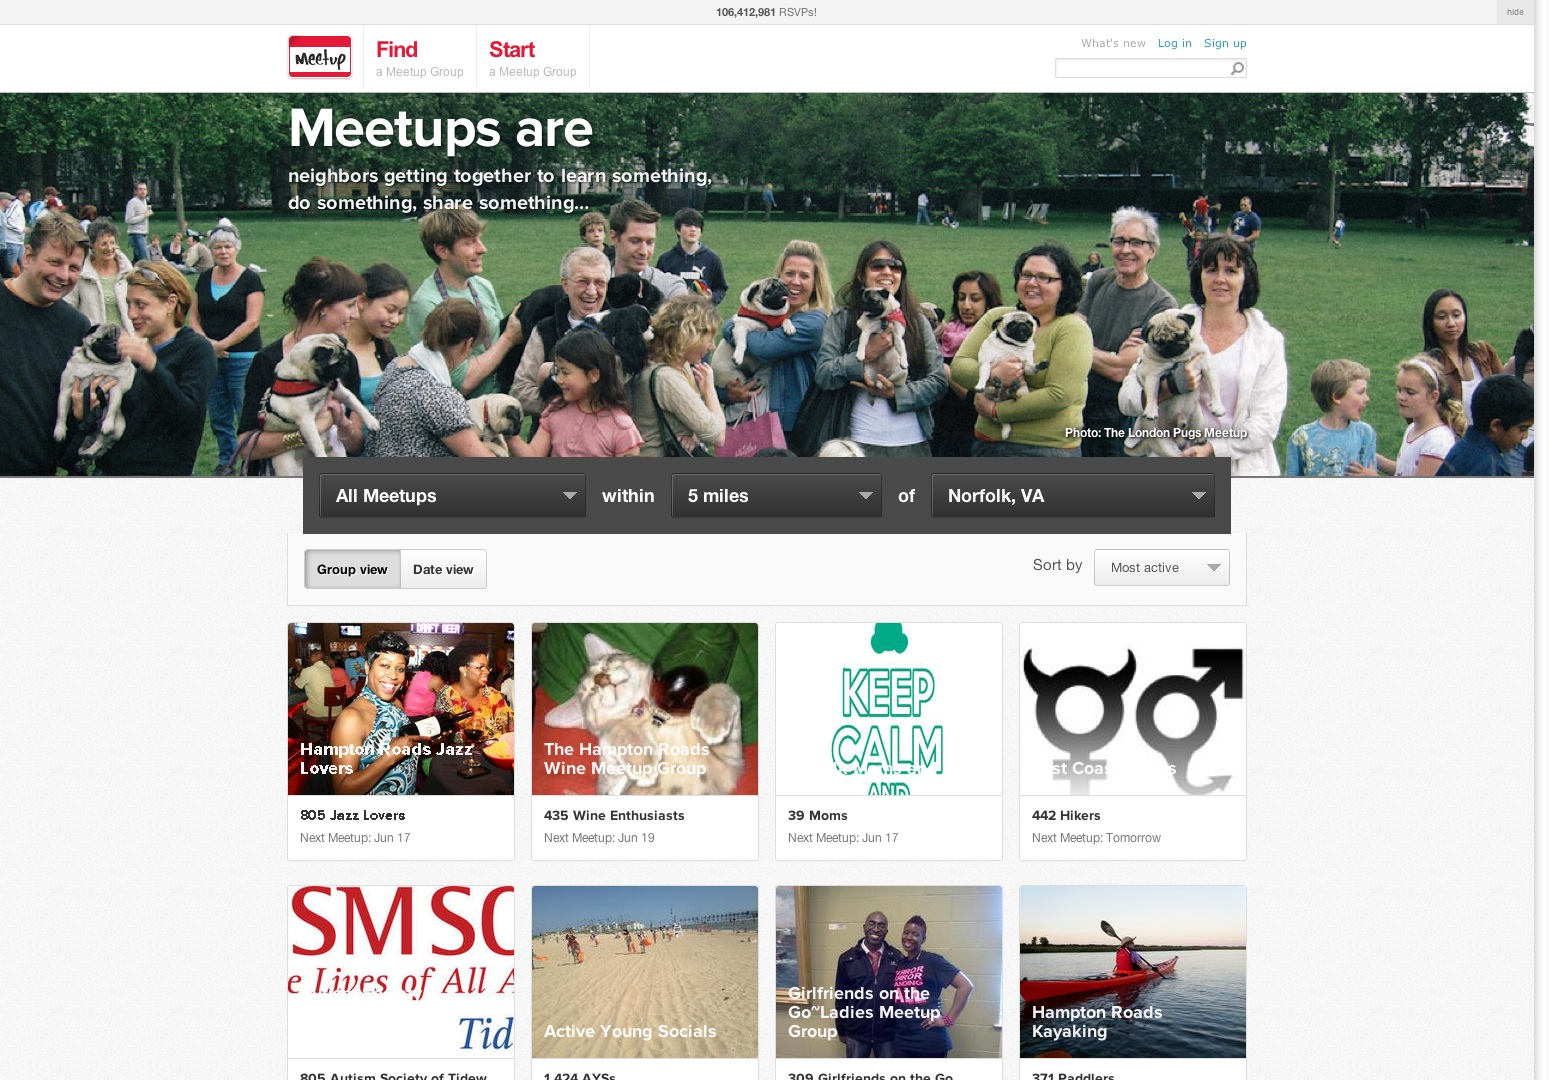 Find Meetup groups near you - Meetup